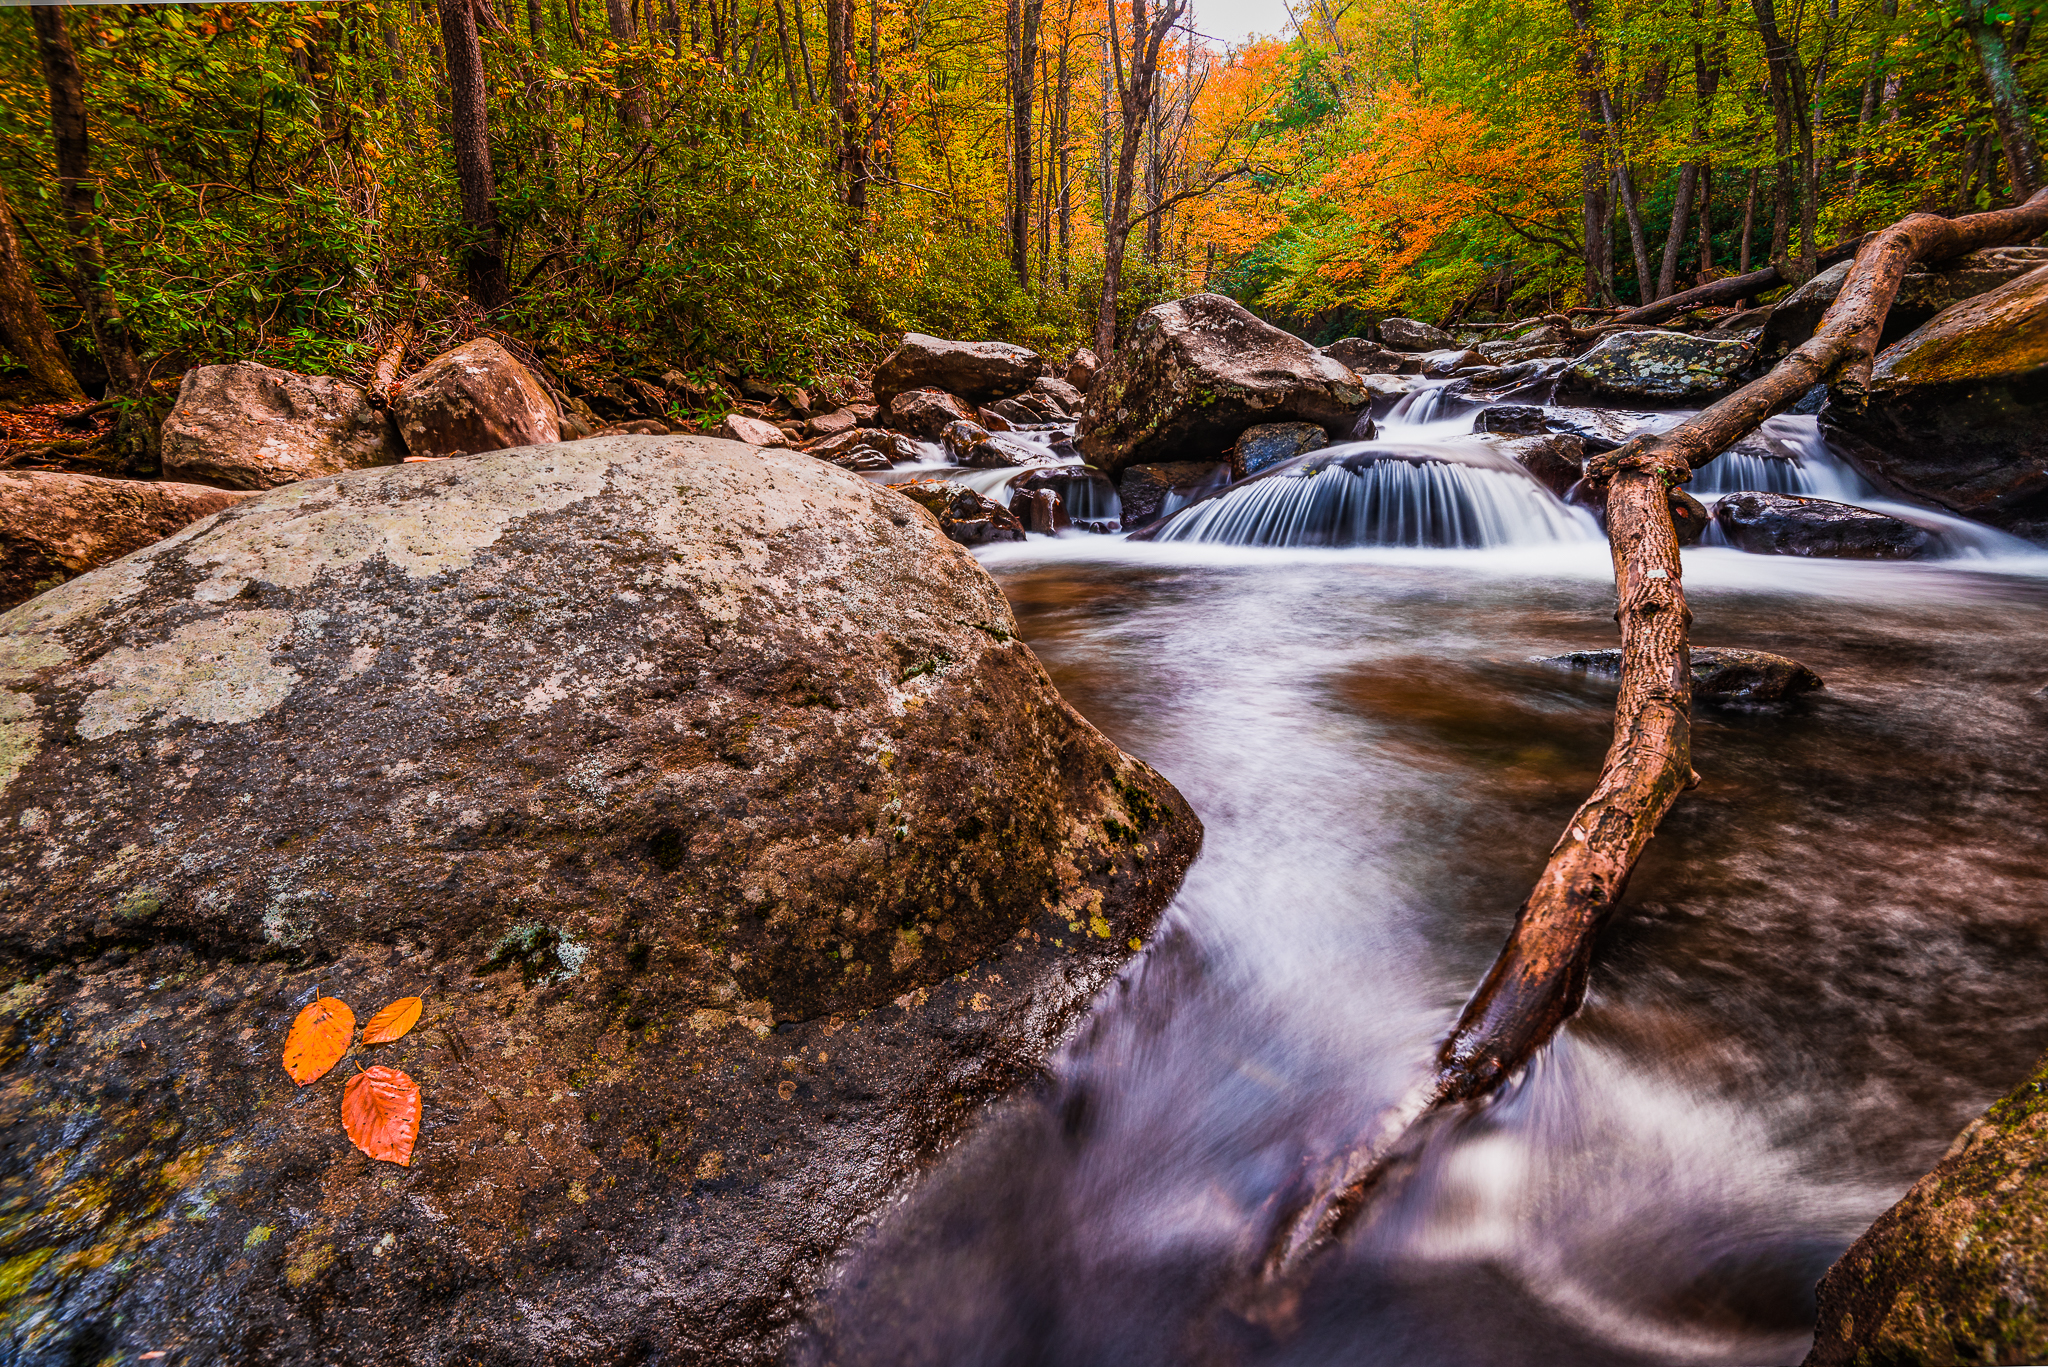 Trifecta. (Water, Fall, Leaves)